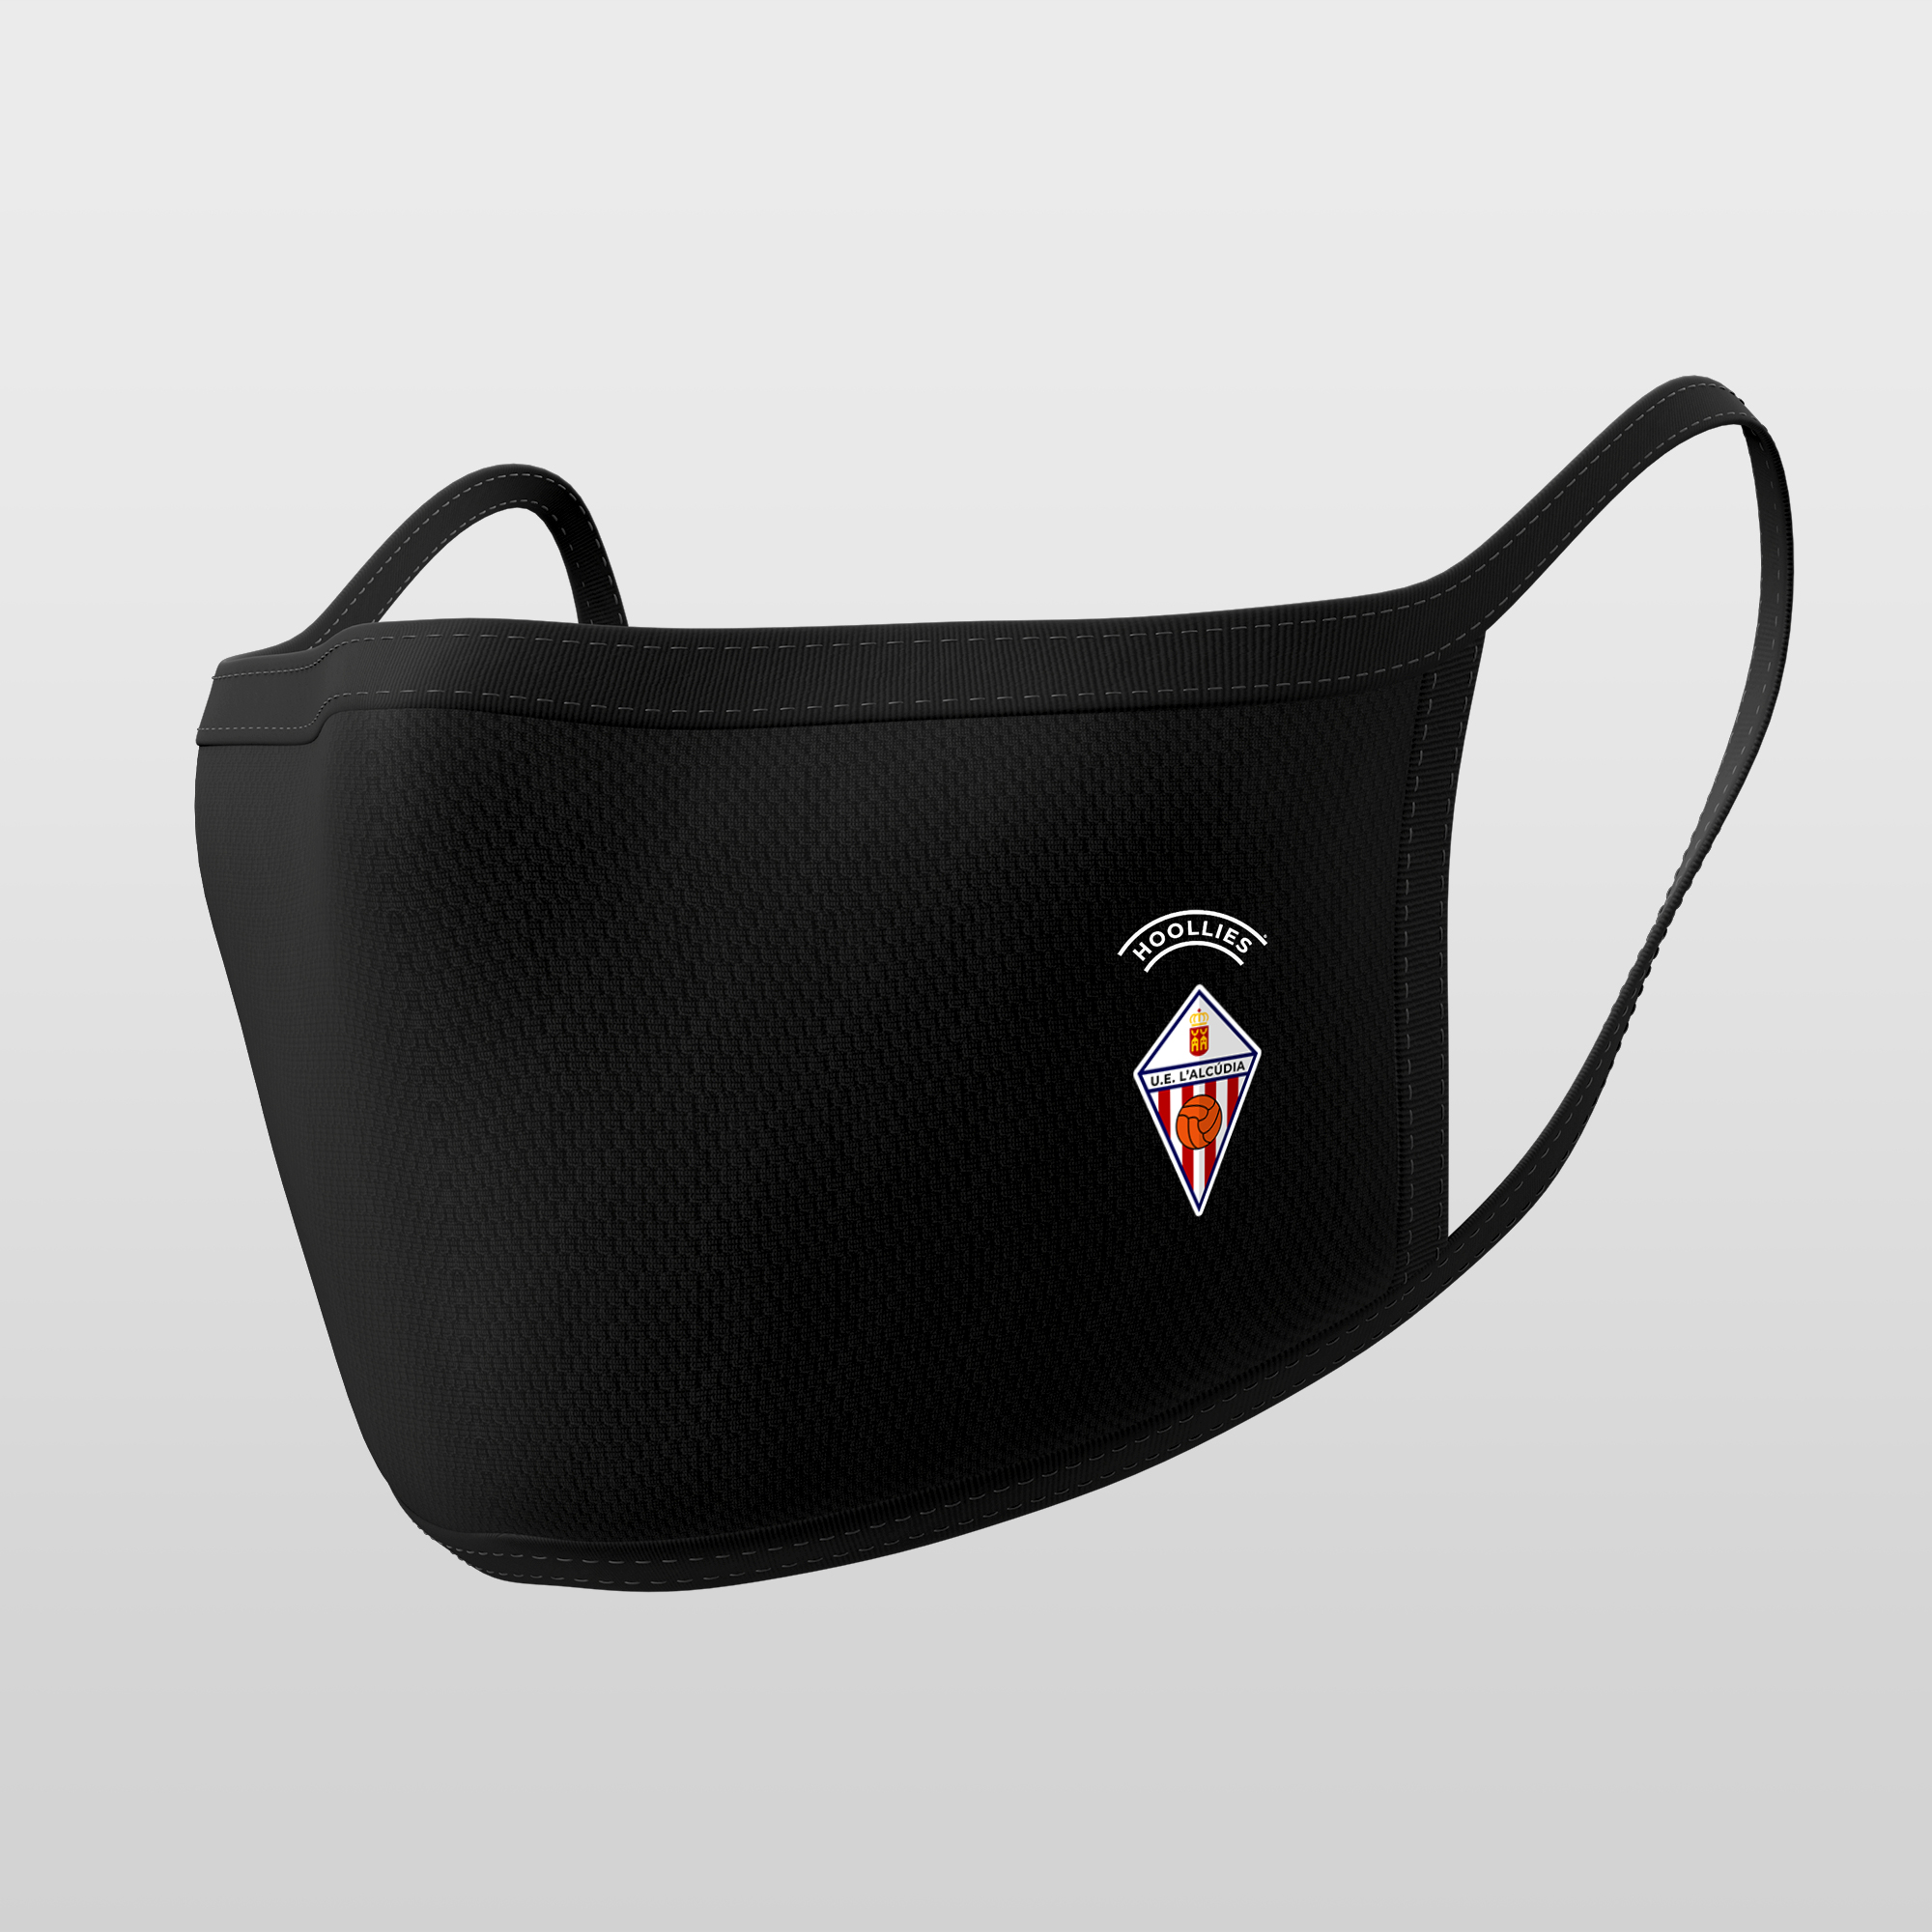 mockup-facemask-hoollies-ue-lalcudia-black-edition